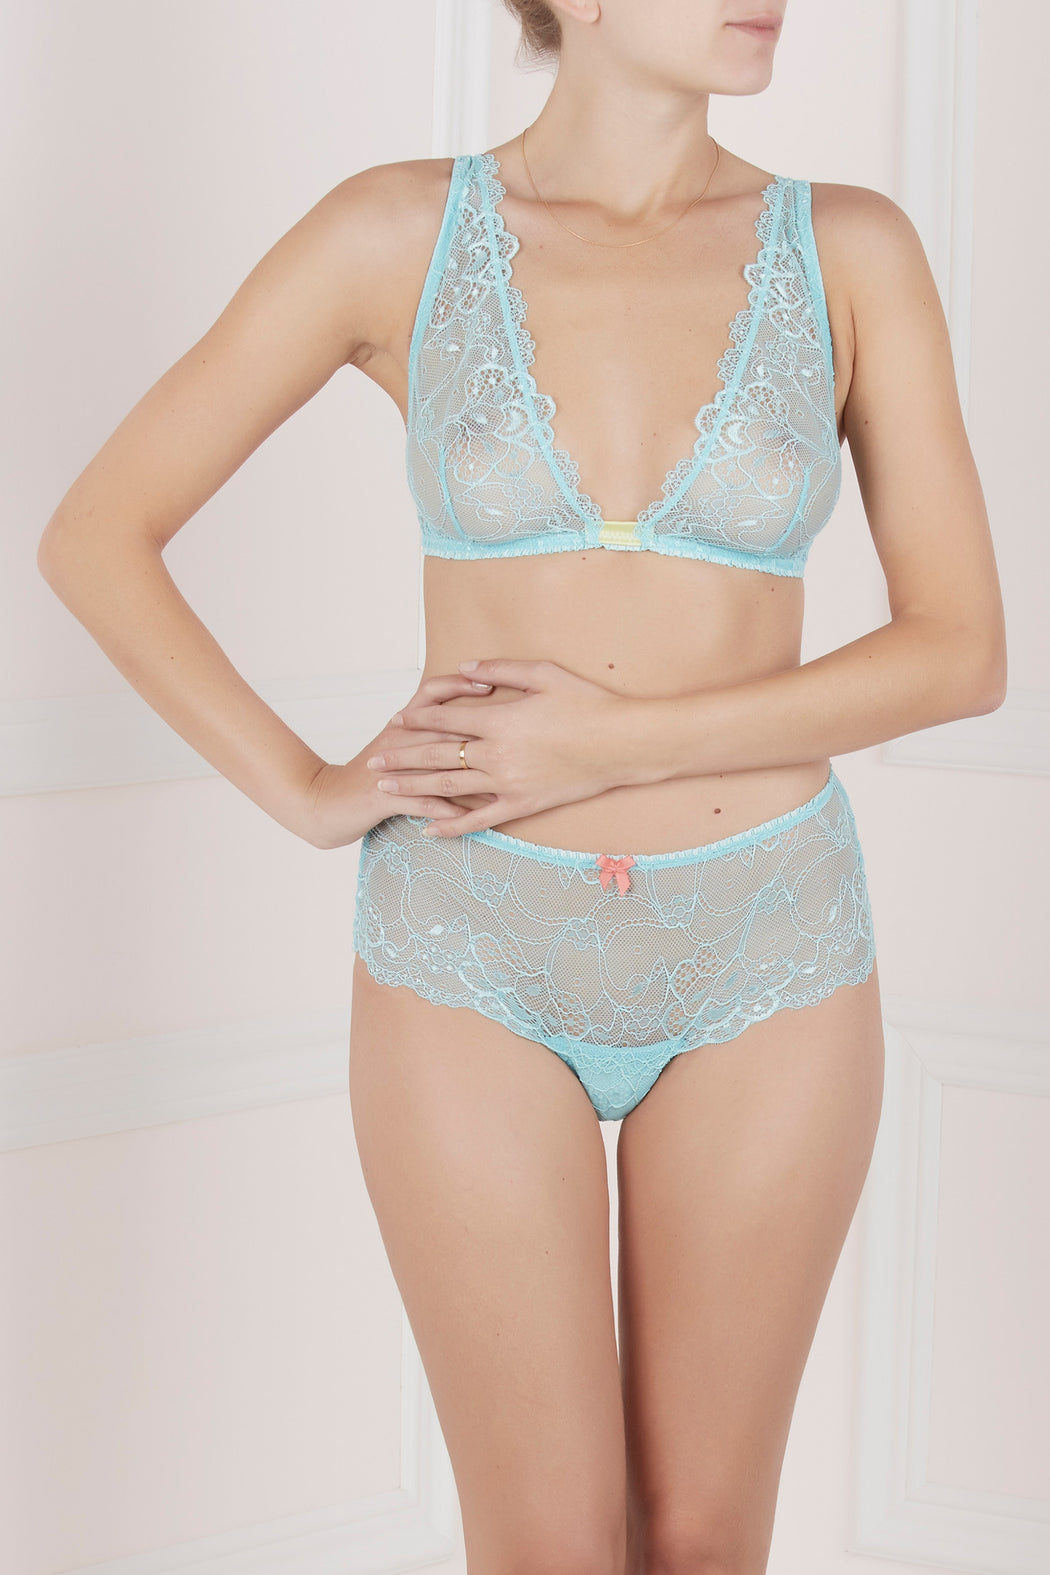 Workingirls Lingerie | Summer Sorbet Soft Bra by Mimi Holliday